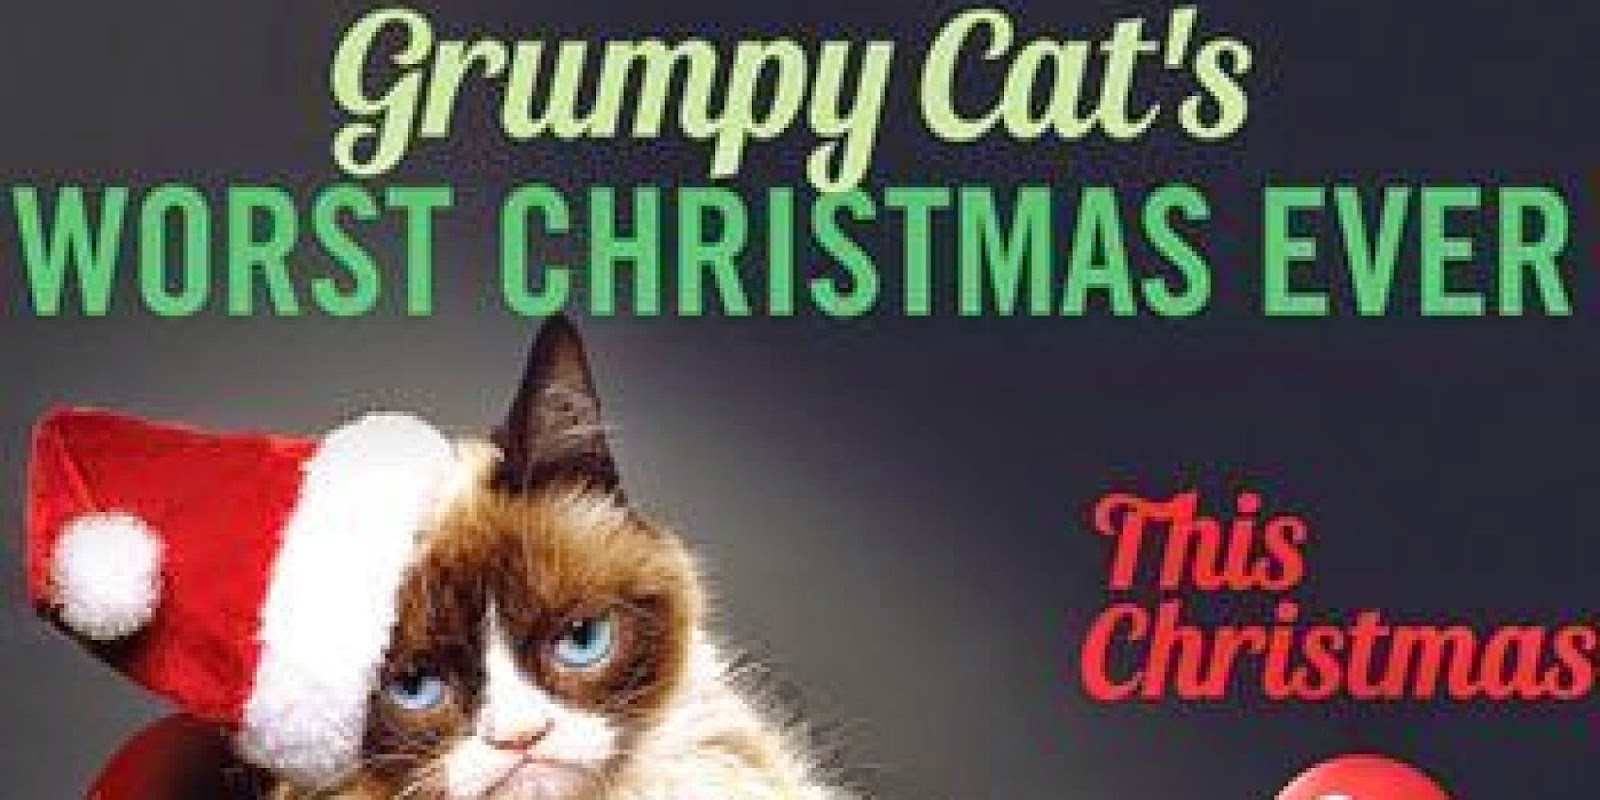 Grumpy cat movie trailer teaser trailer check out the official trailer of grumpy cat the upcoming comedy tv movie directed by tim hill and jeff morris and starring aubrey plaza and megan thecheapjerseys Choice Image